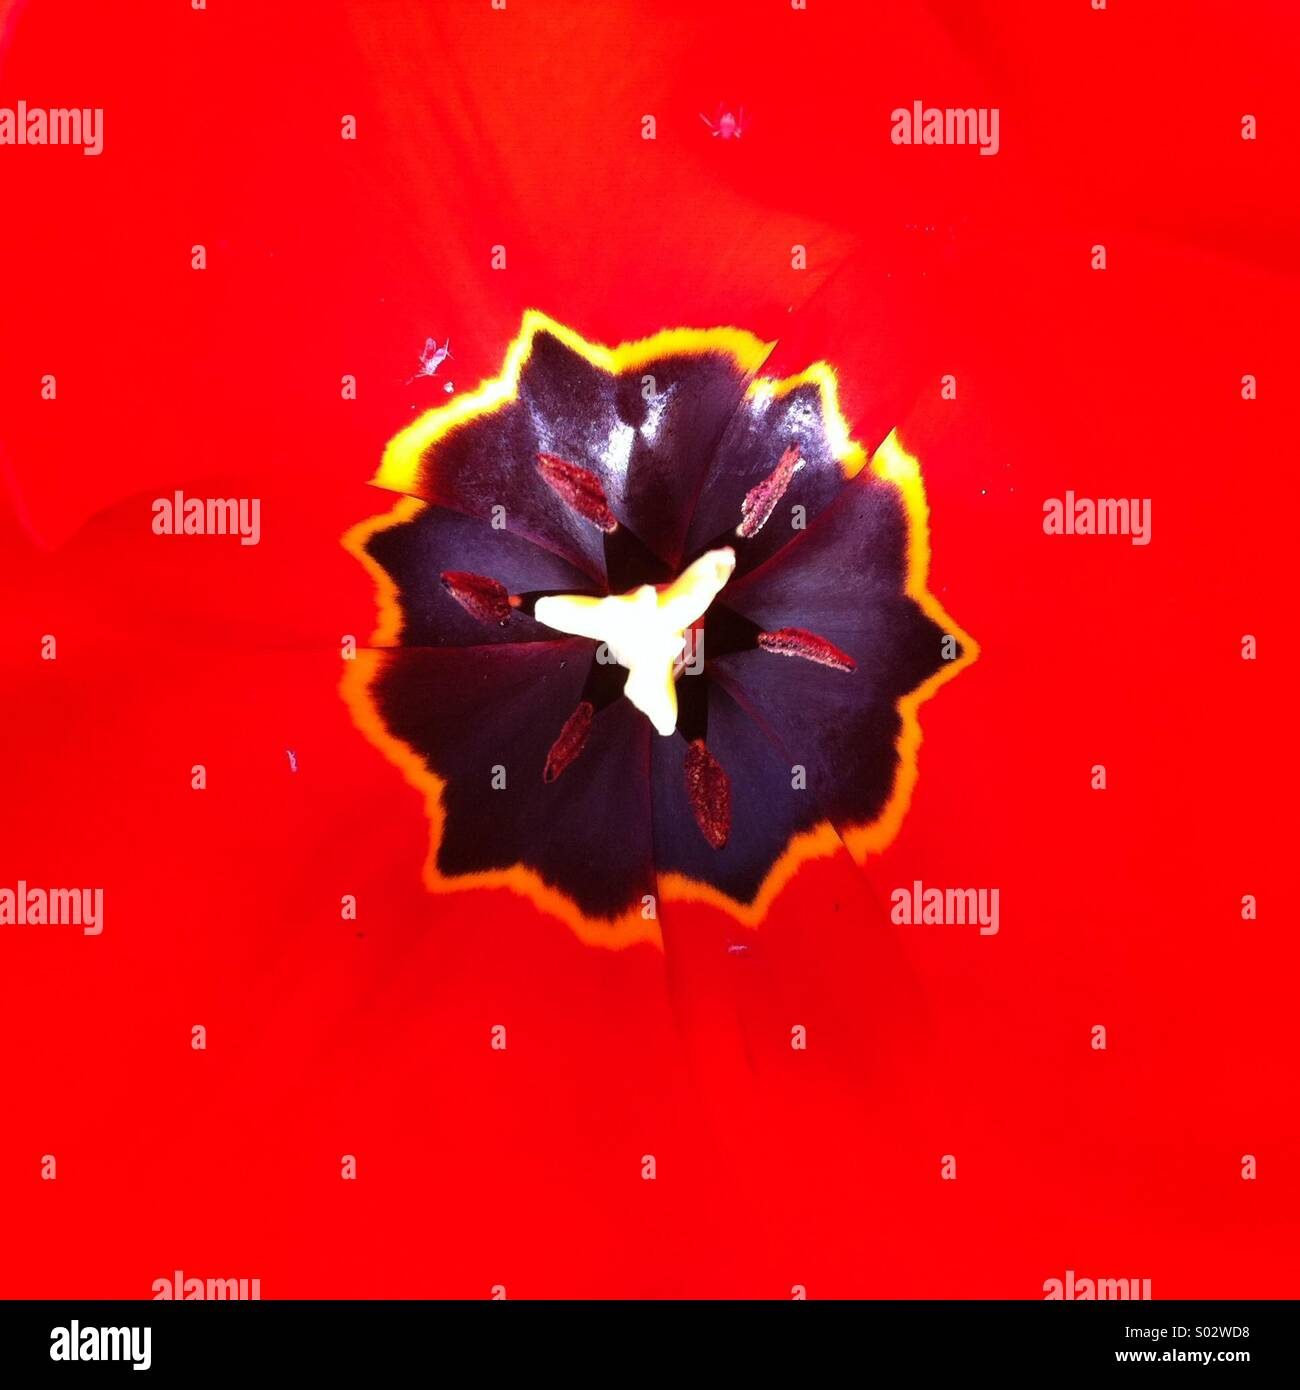 Black uneven shape on strong red background Tulip flower close up - Stock Image